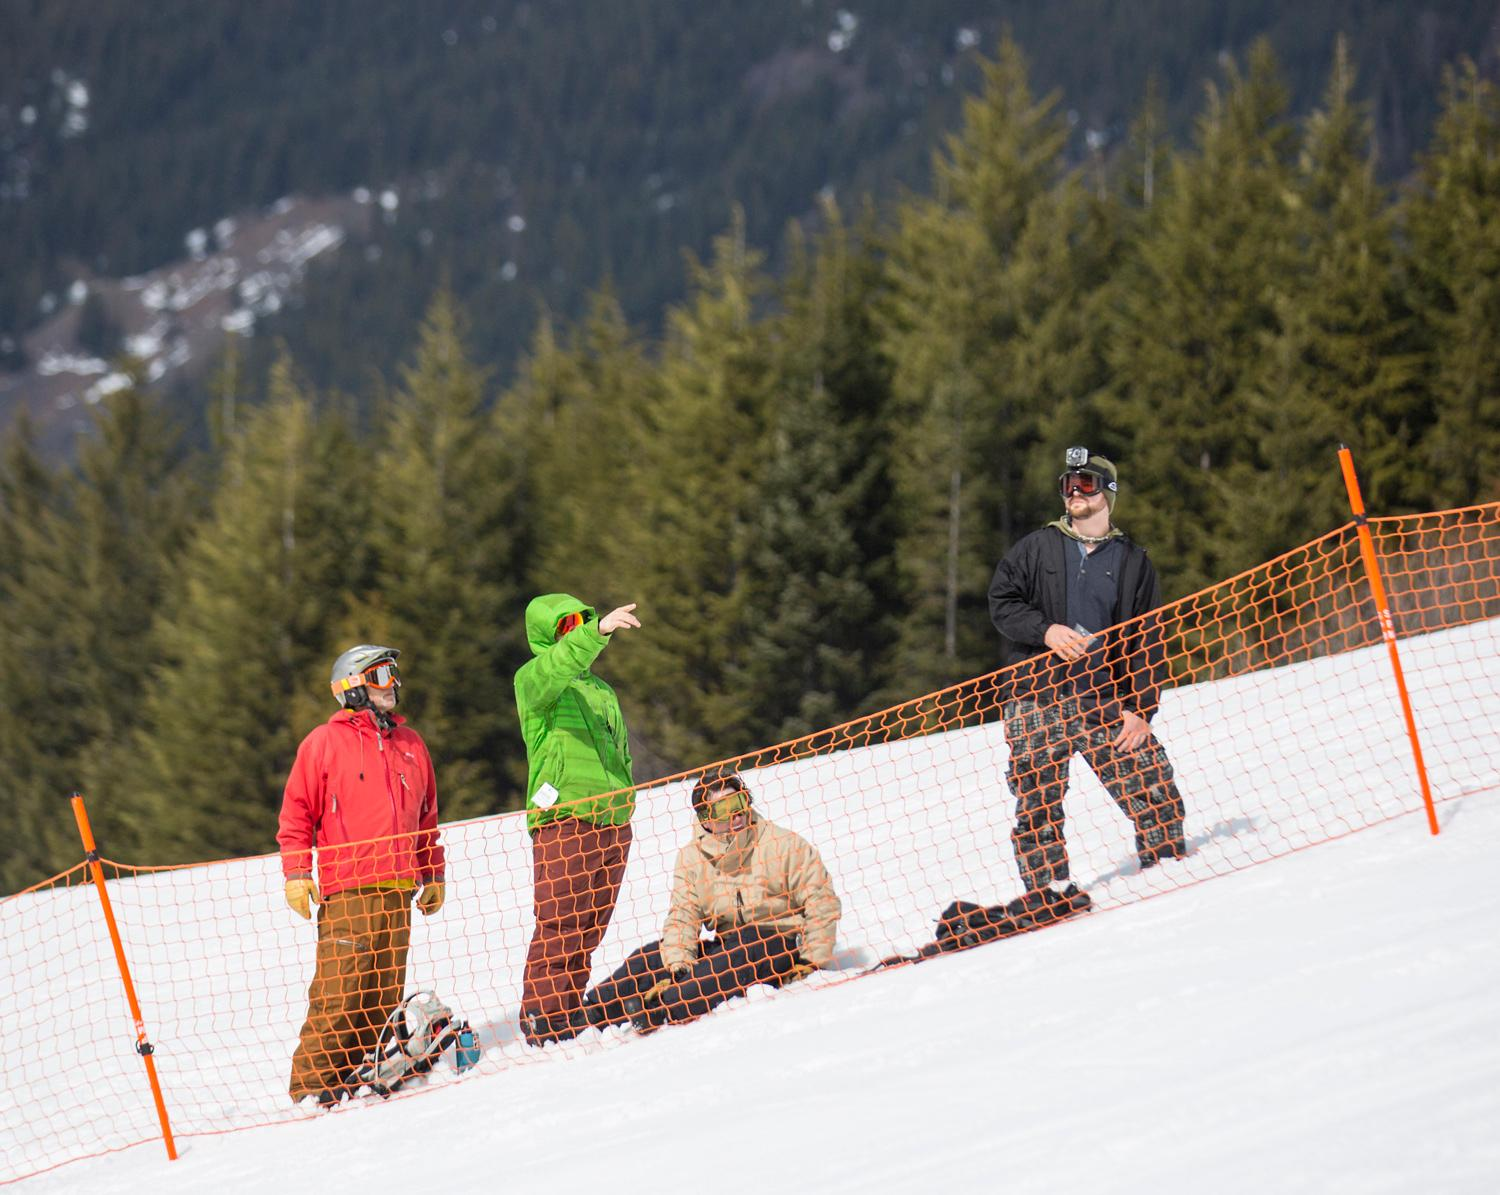 Clothes came off and the sun came out at Crystal Mountain for the annual Elysian Superfuzz Bikini Downhill fundraiser which benefited the Crystal Mountain Fire Department. Talk about a chilly day! (Sy Bean / Seattle Refined)